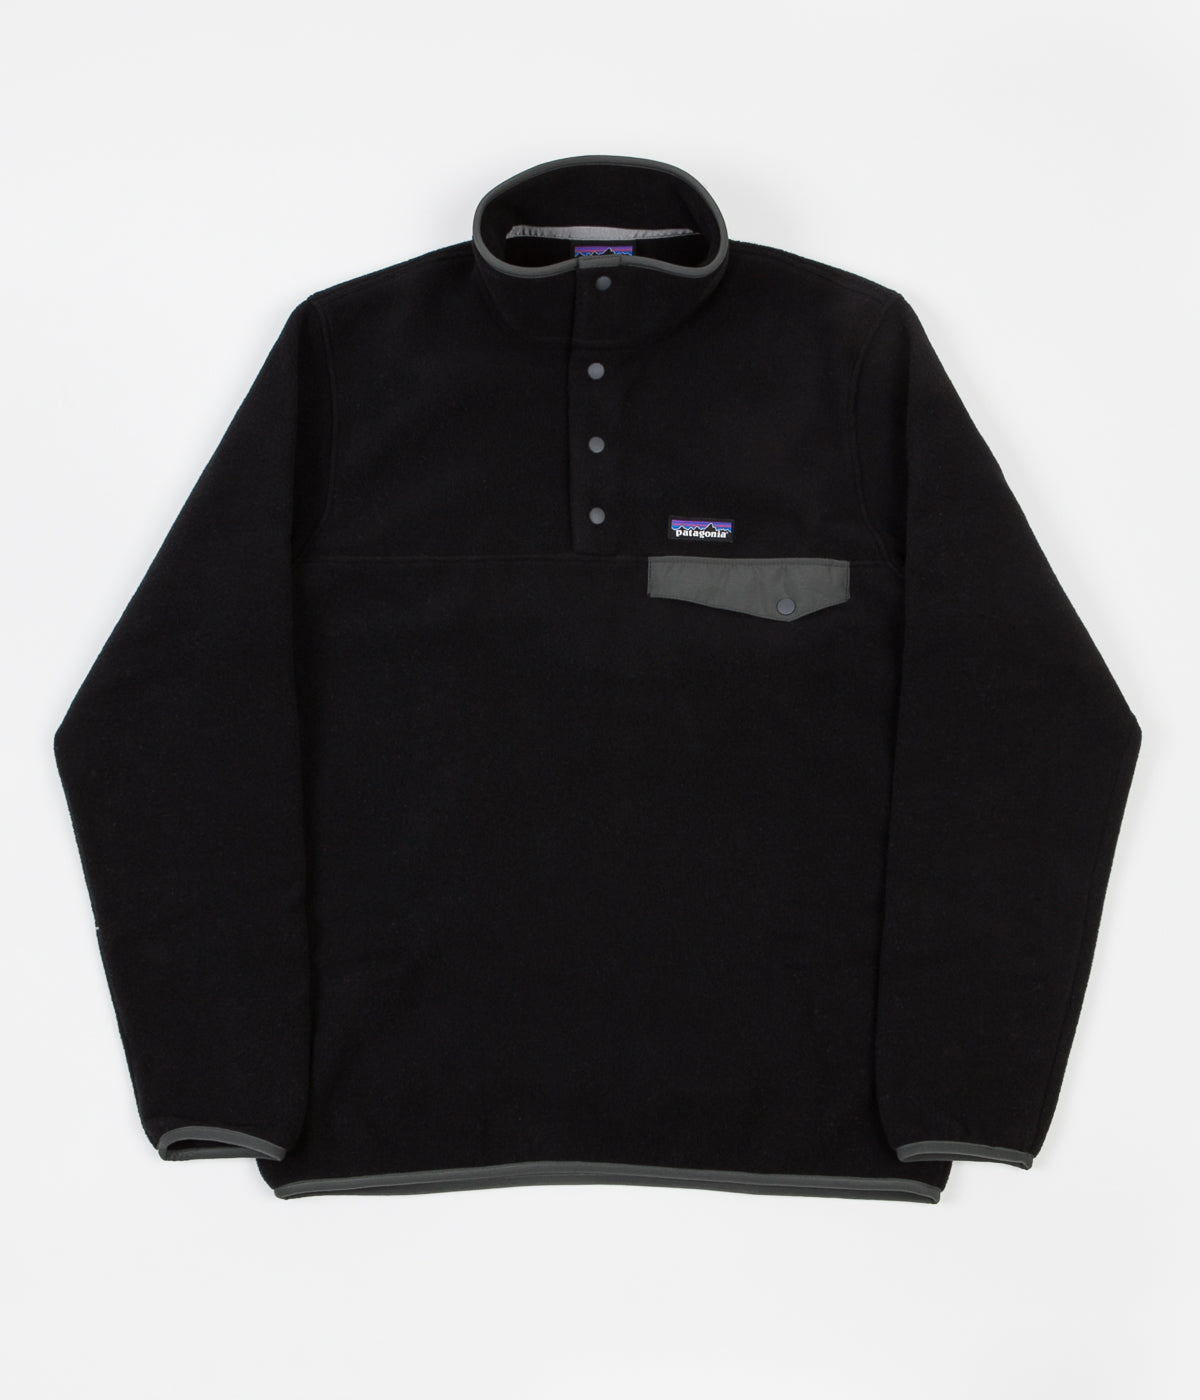 Patagonia Lightweight Synchilla Snap-T Fleece Pullover Sweatshirt - Black / Forge Grey